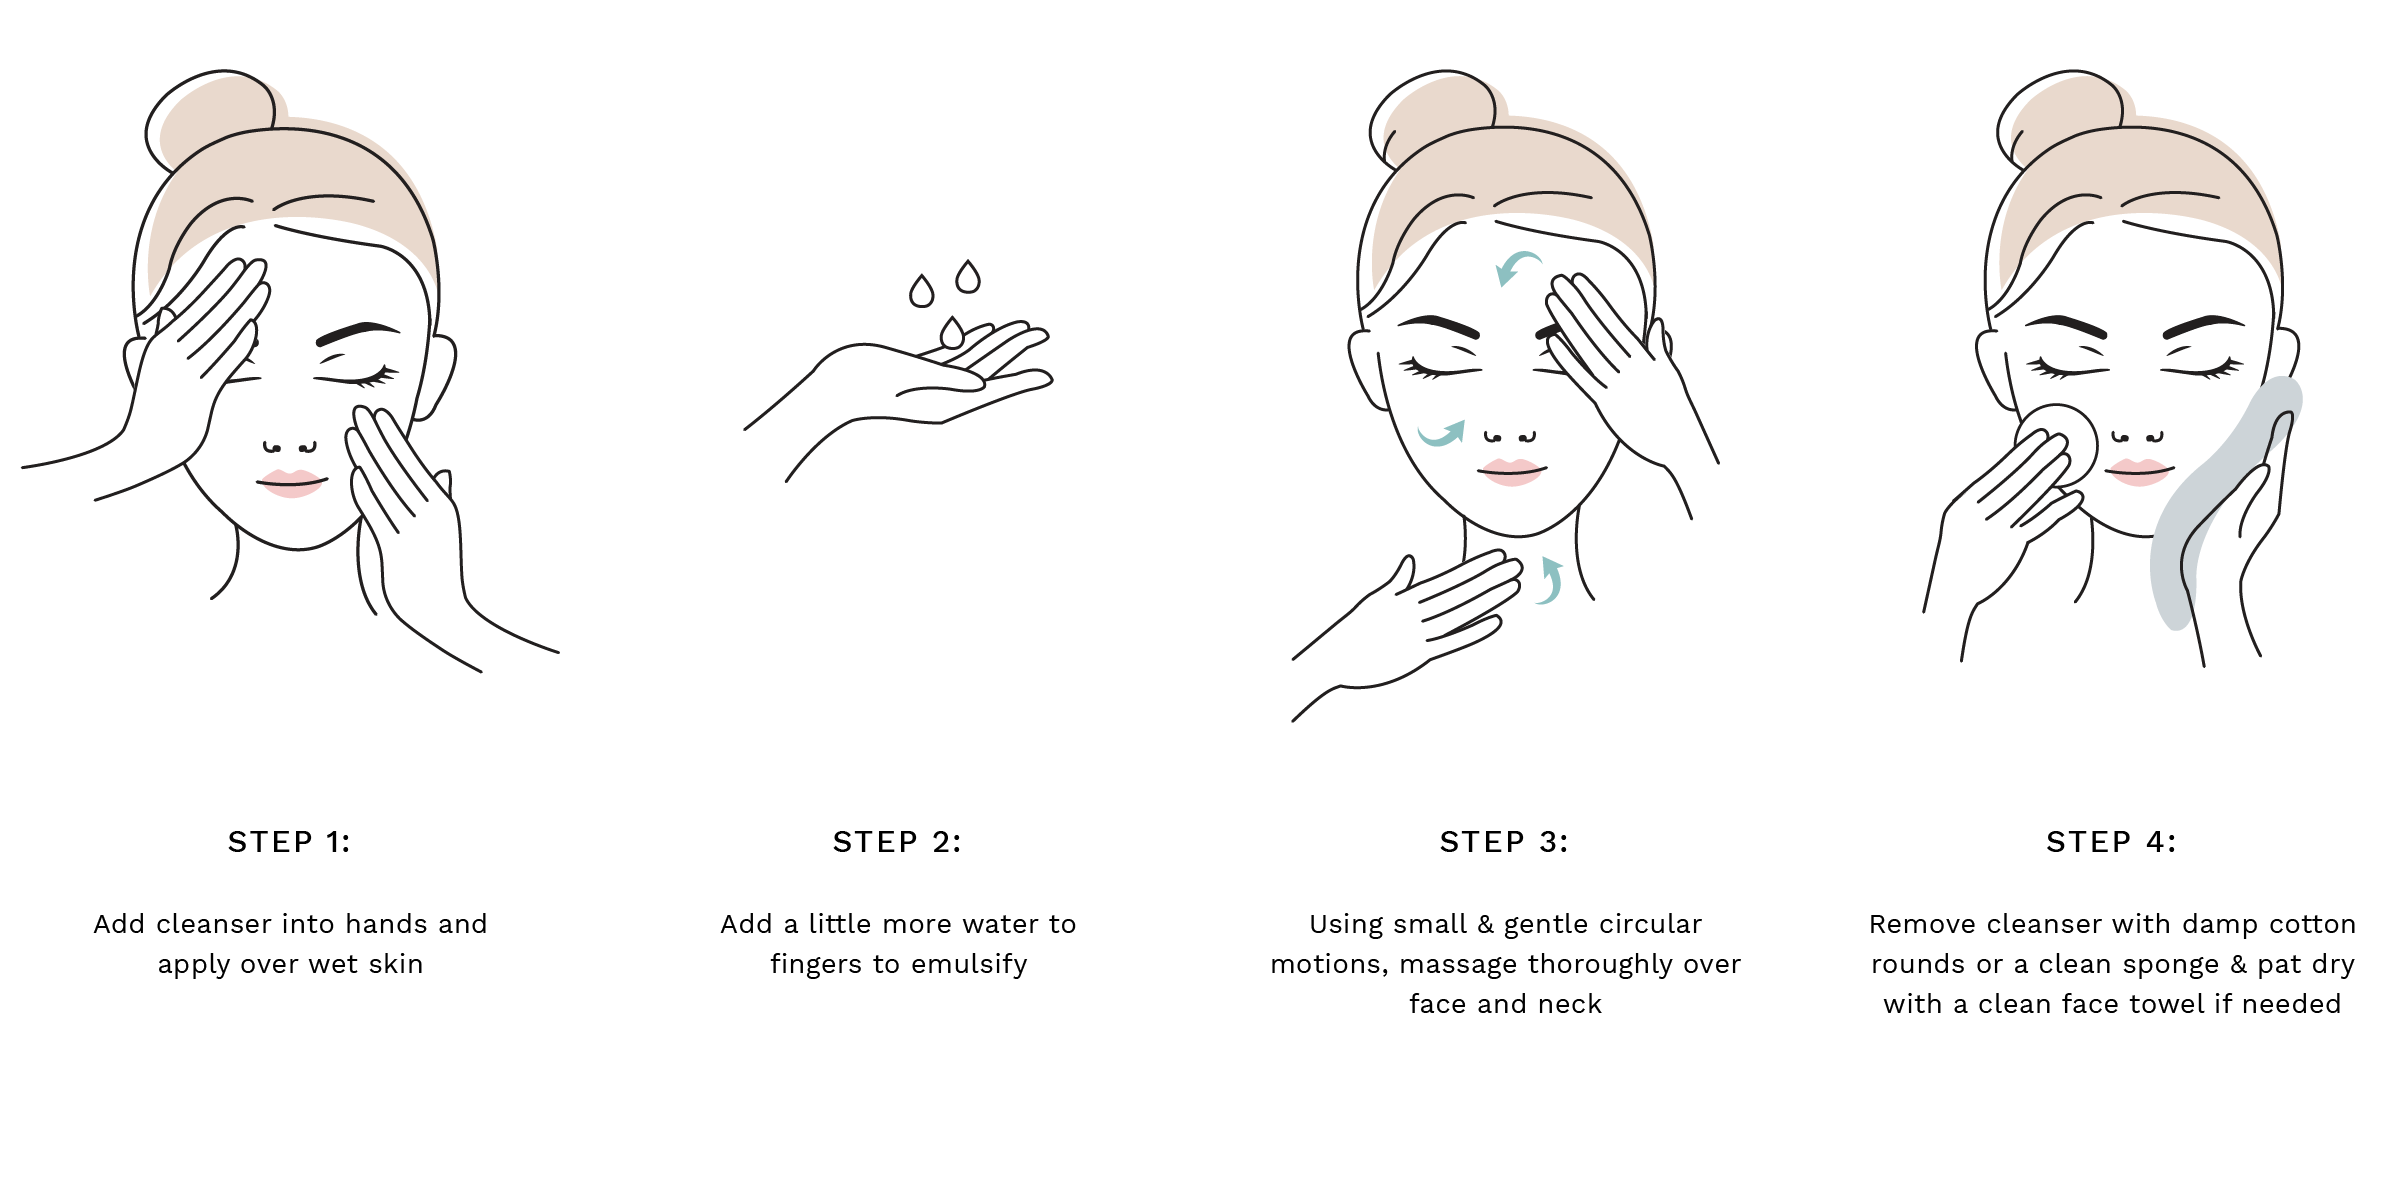 Step 1: Add cleanser into hands and apply over wet skin. Step 2: Add a little more water to fingers to emulsify.  Step 3: Using small & gentle circular motions, massage thoroughly over face and neck. Step 4: Remove cleanser with damp cotton rounds or a clean sponge & pat dry with a clean face towel if needed.